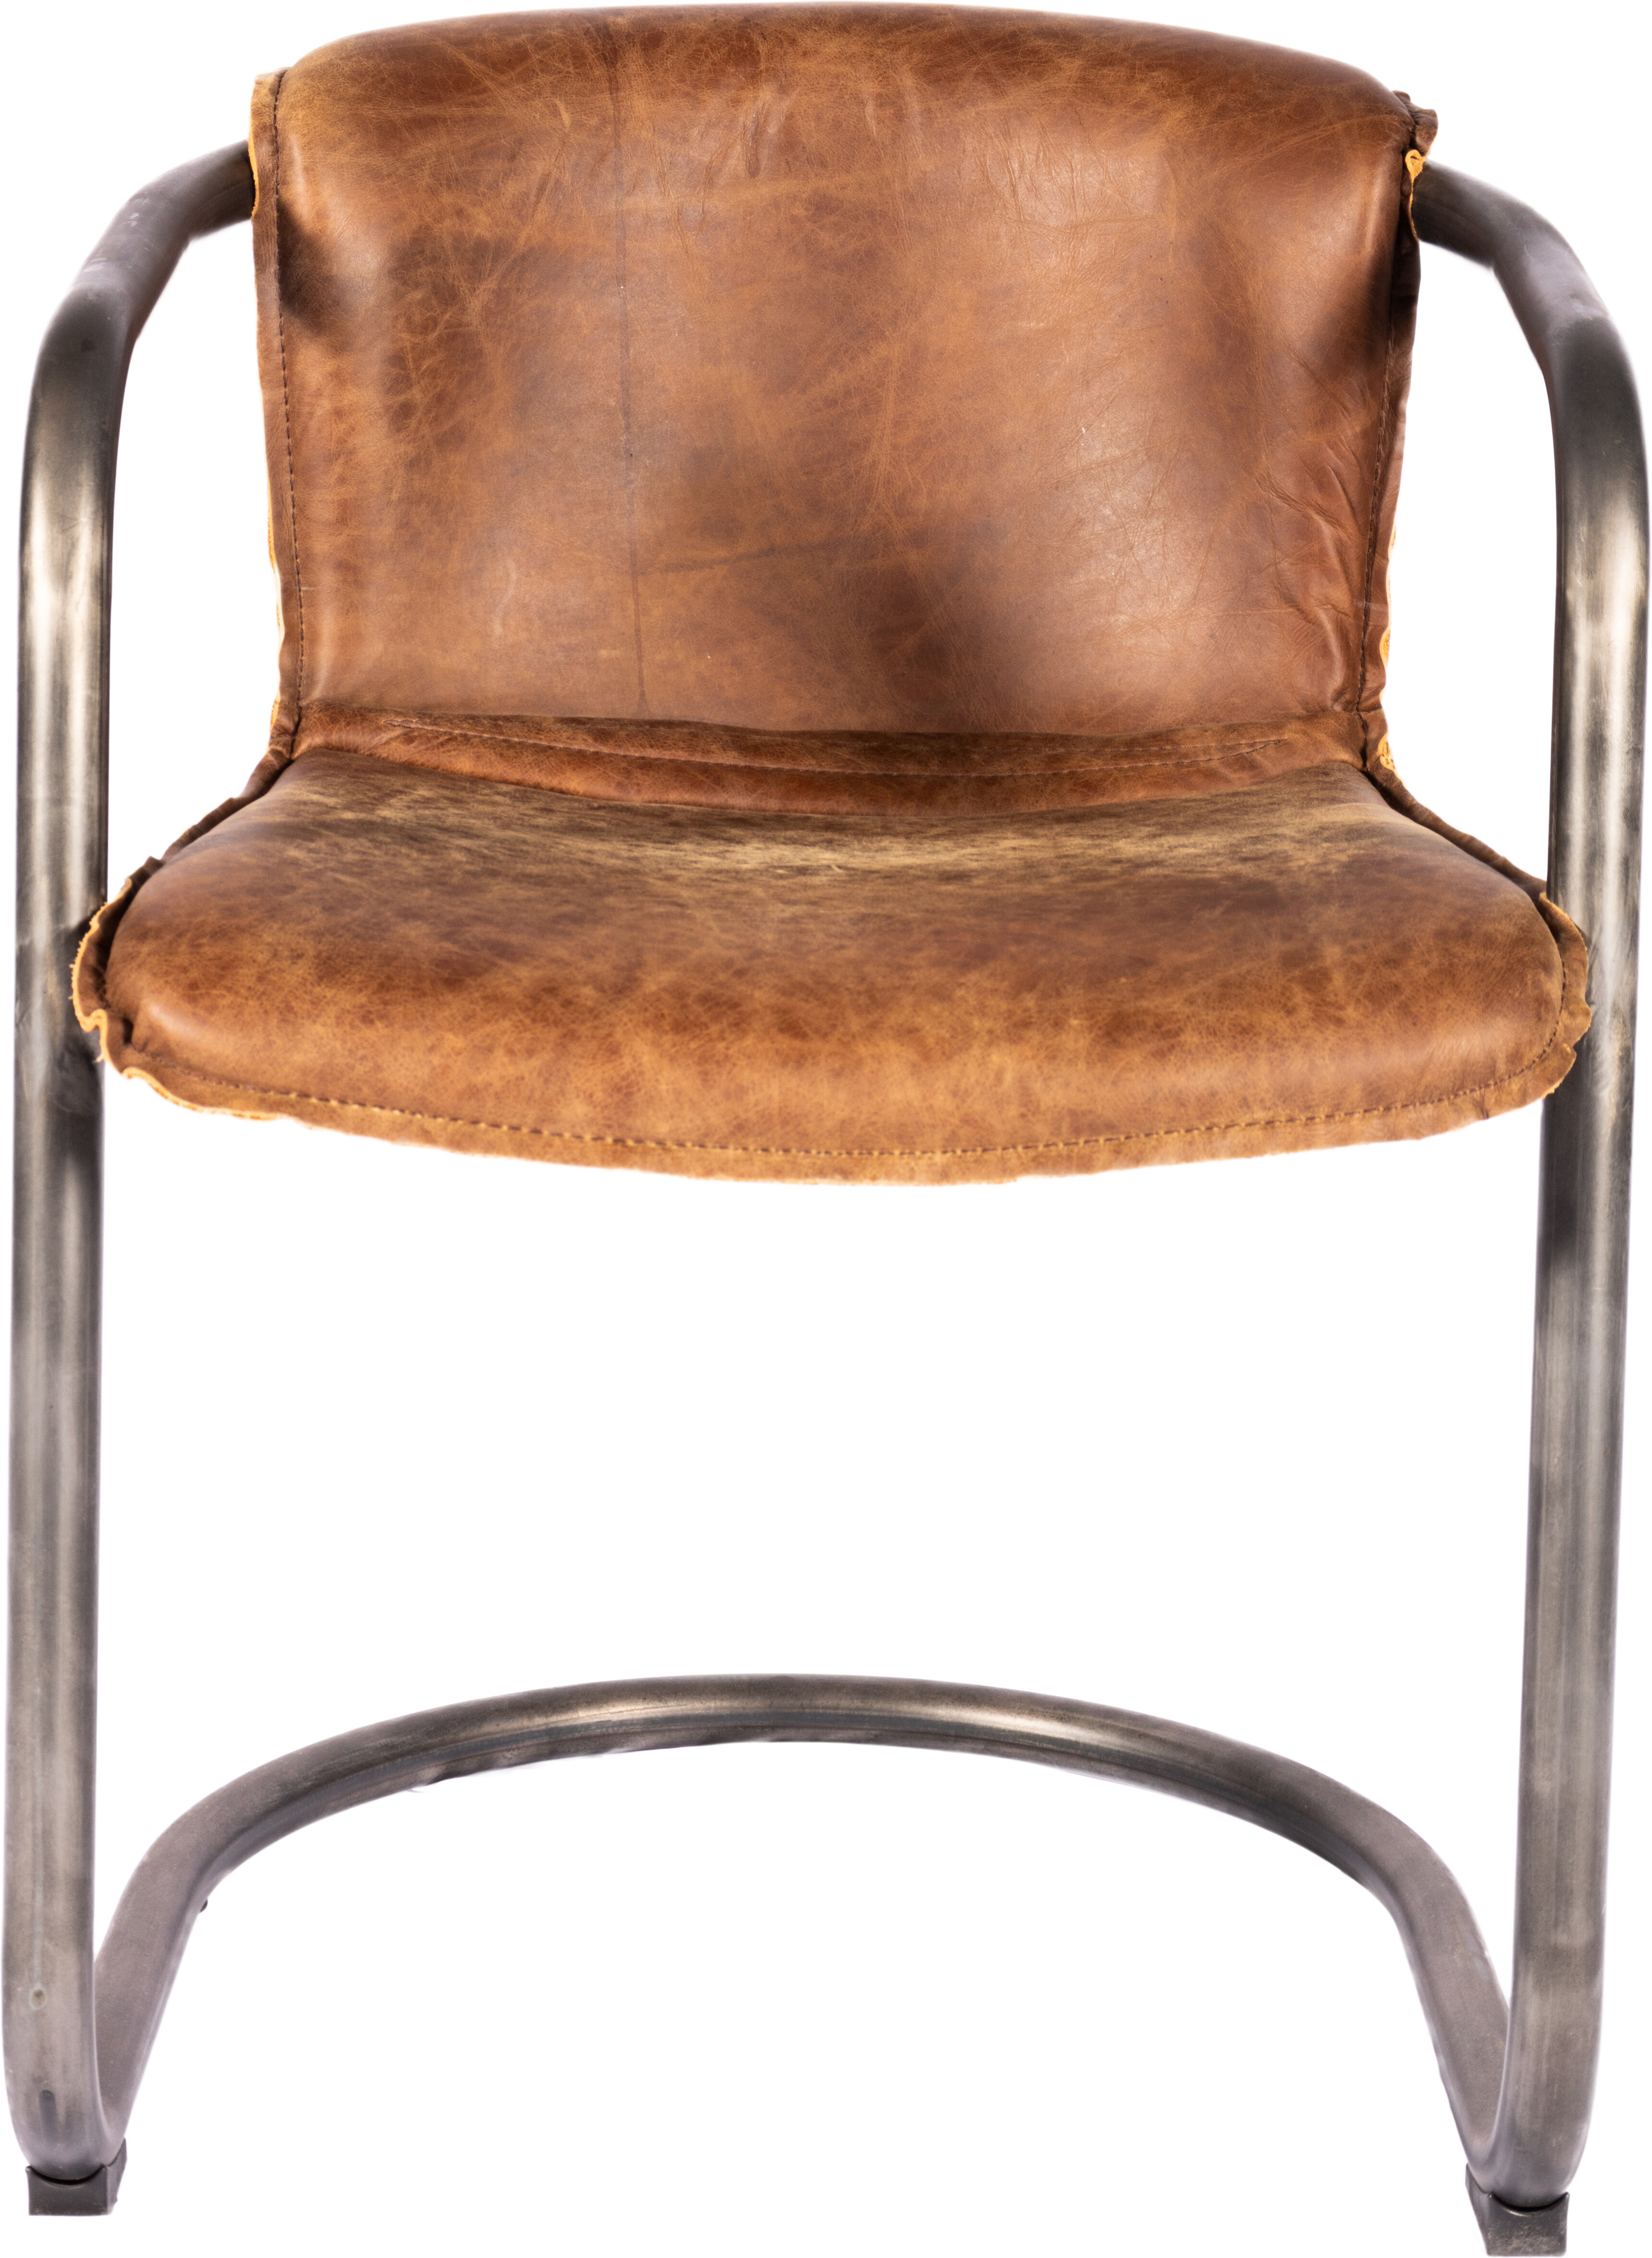 Luxury Genuine Leather Dining Chairs Perigold